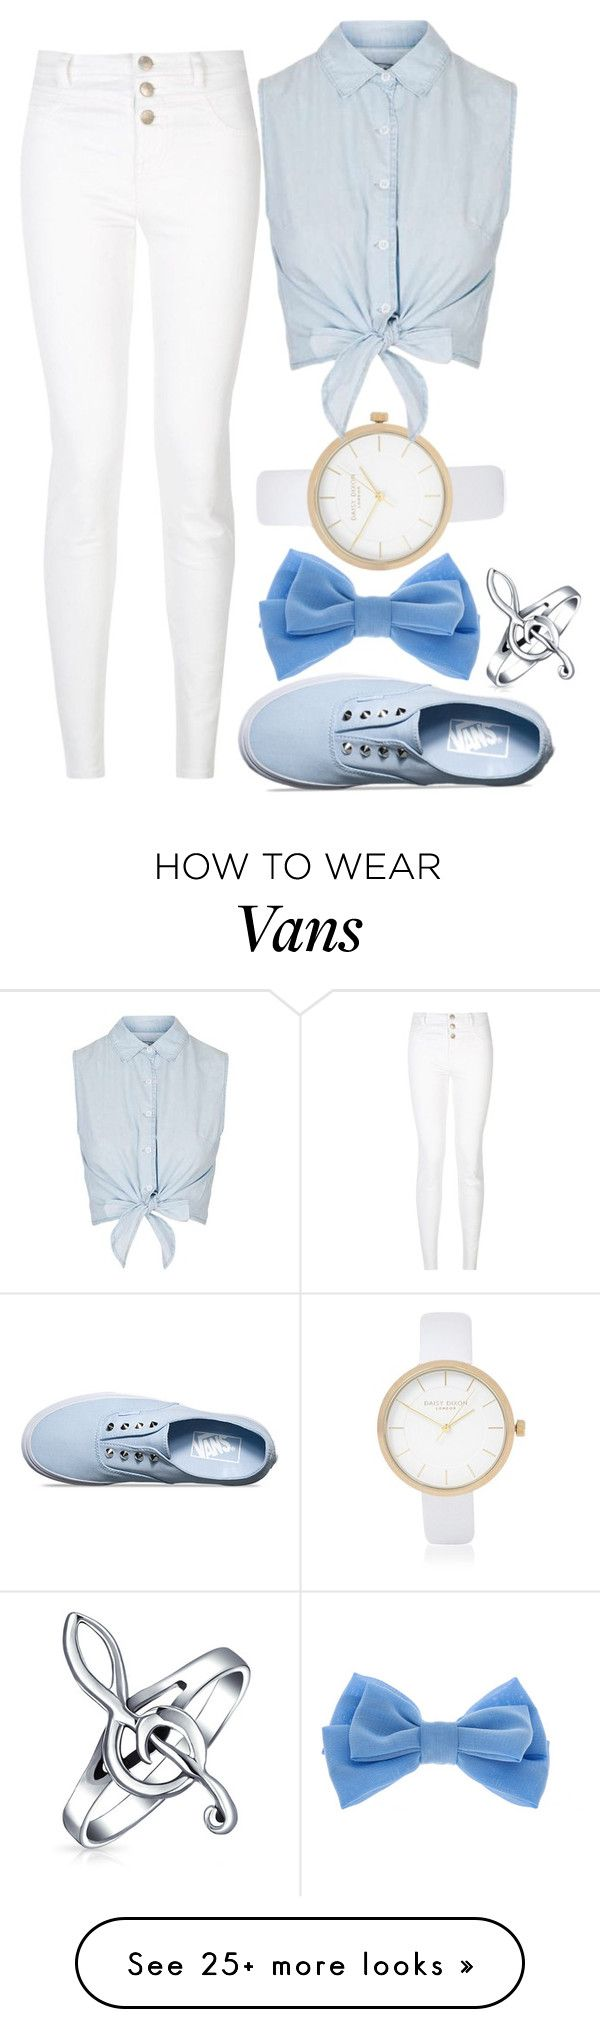 """Untitled #378"" by indianna28-2002 on Polyvore featuring River Island, Topshop, Vans, New Look, Bling Jewelry and claire's"